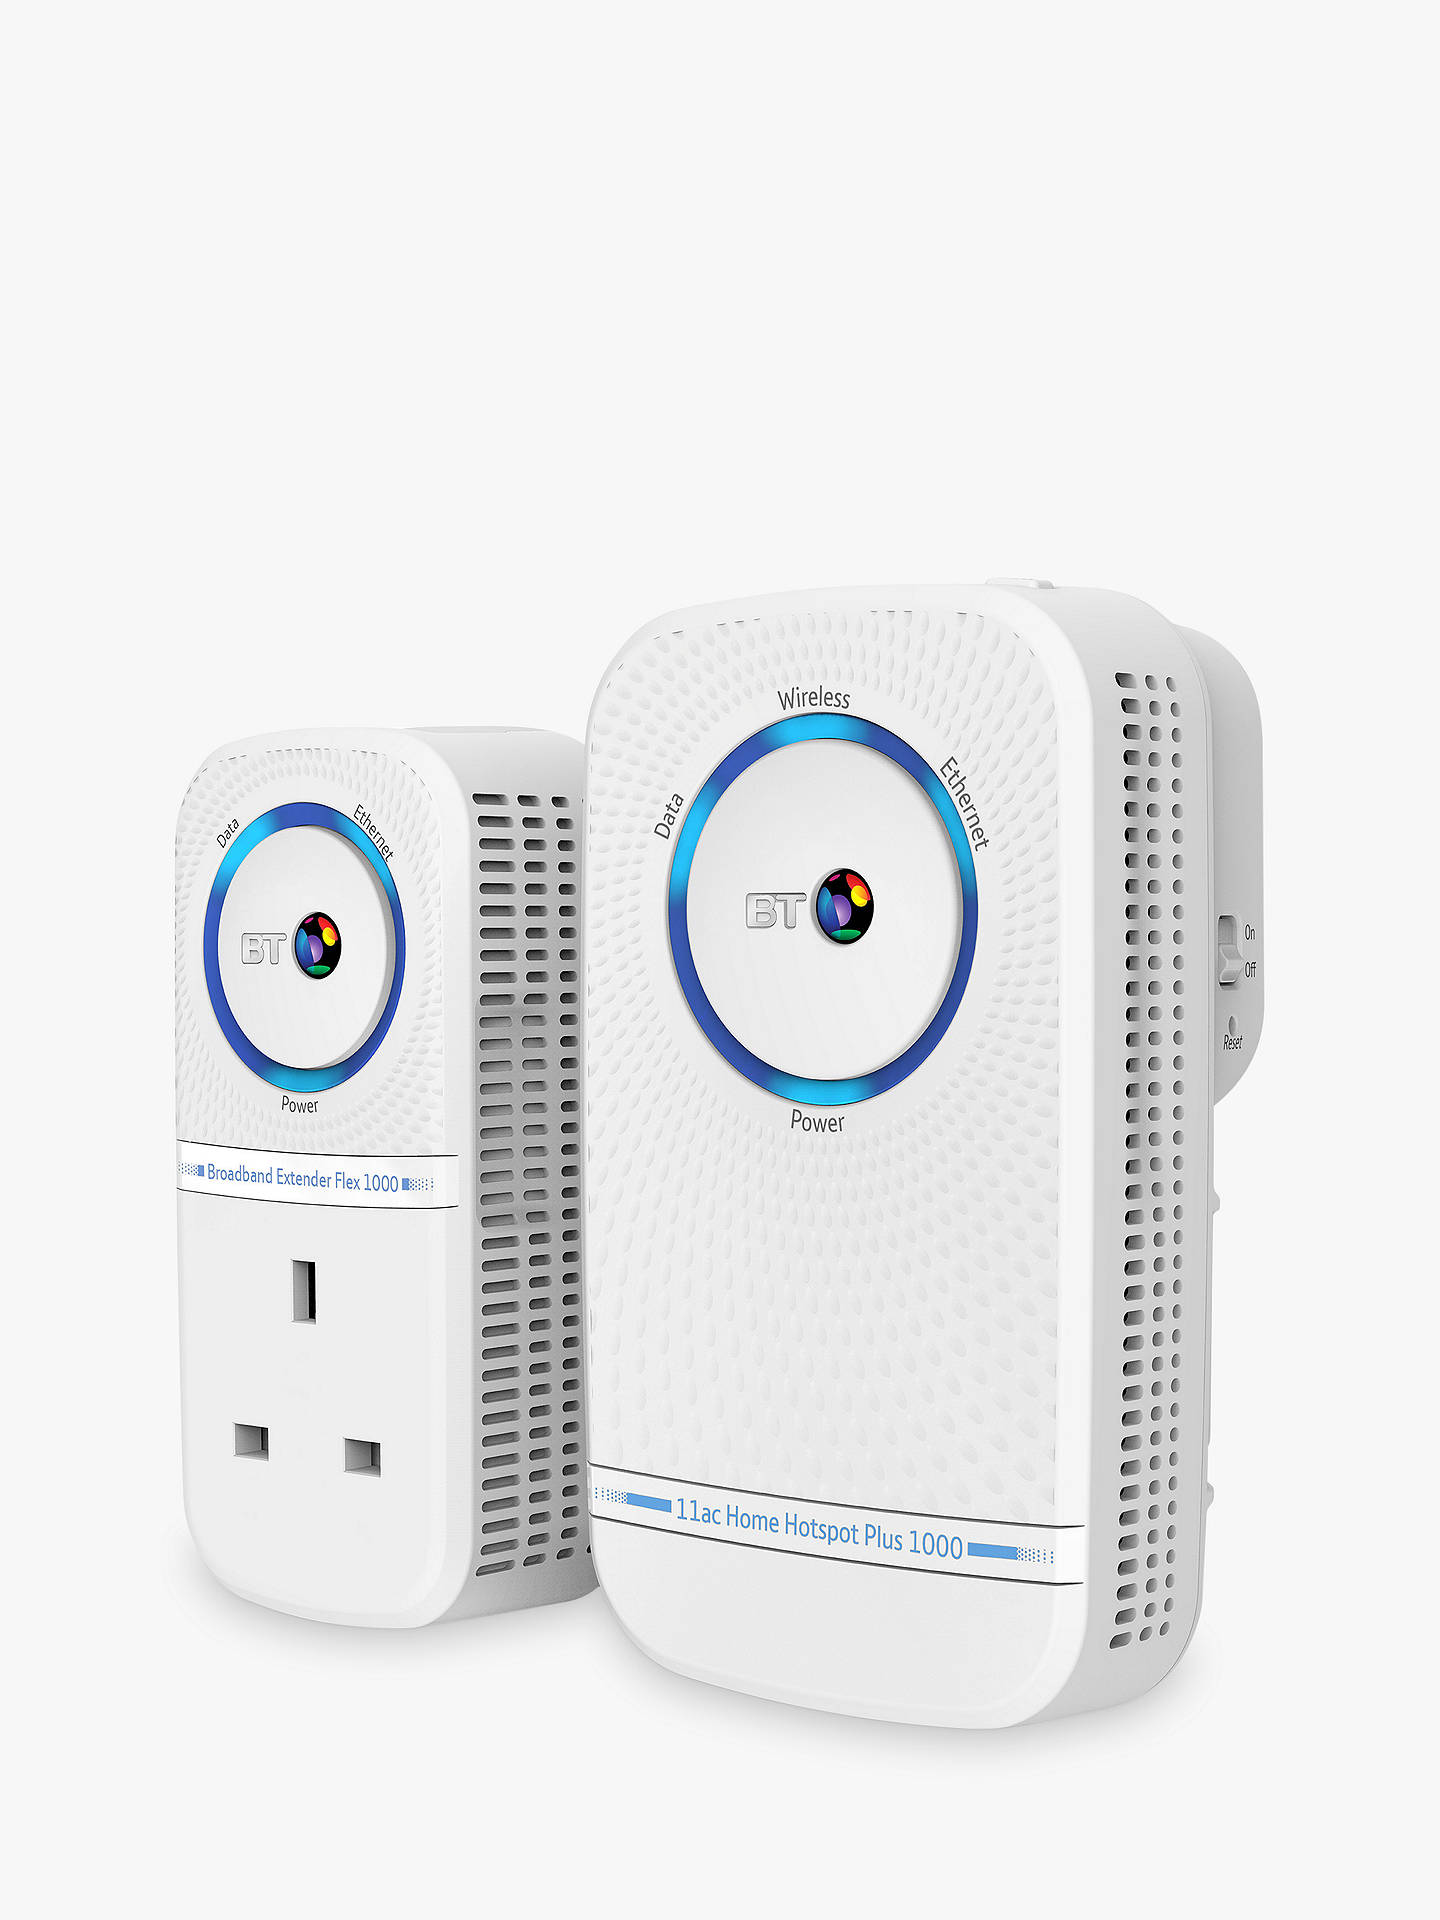 BuyBT 11ac Wi-Fi Home Hotspot Plus 1000 Online at johnlewis.com